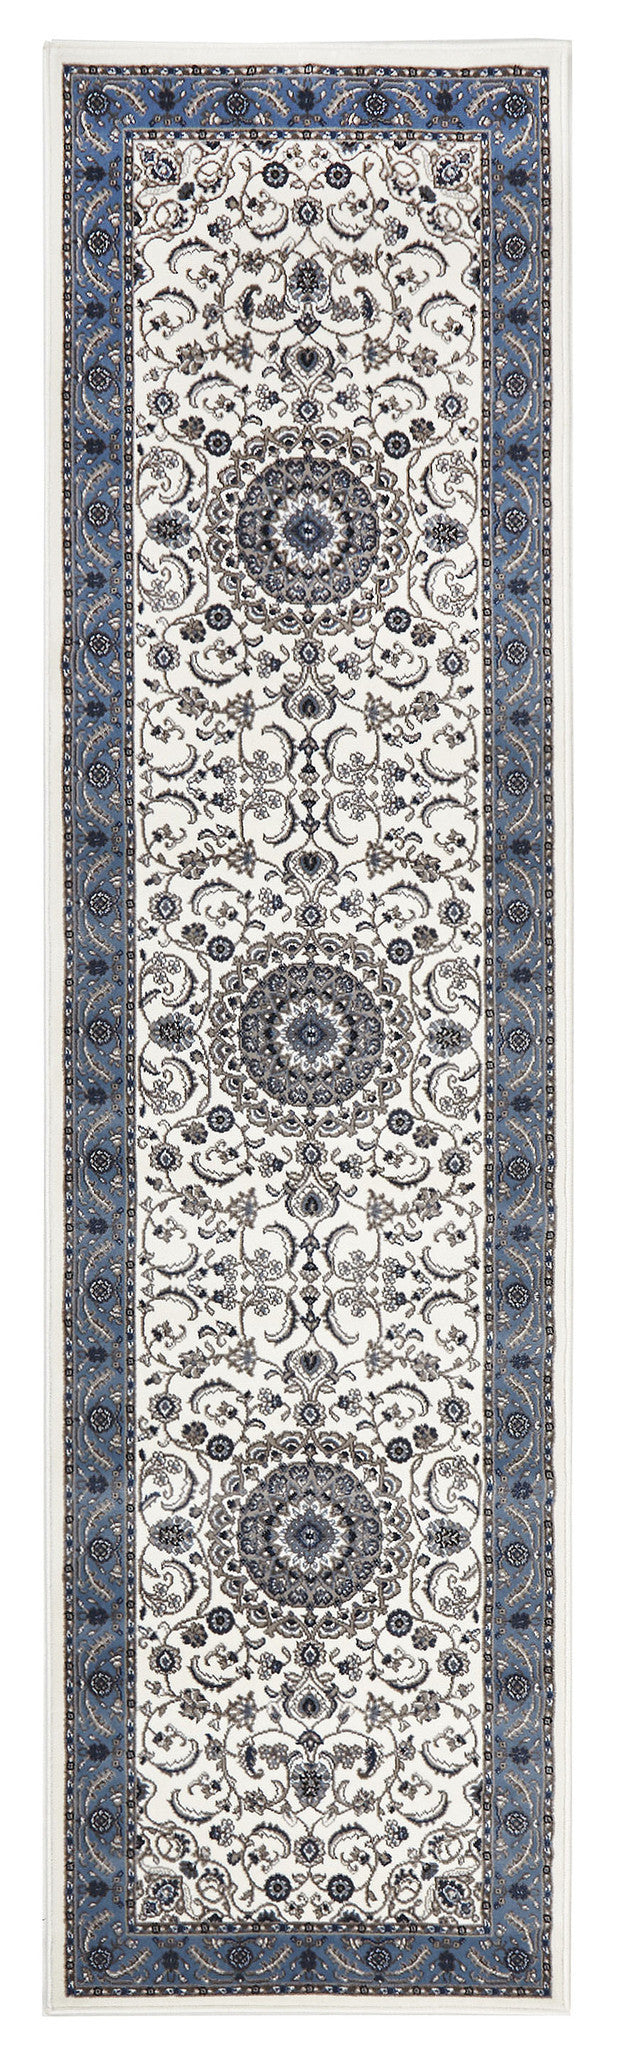 Sydney Medallion Rug White with Blue Border - aladdinrugs - 5